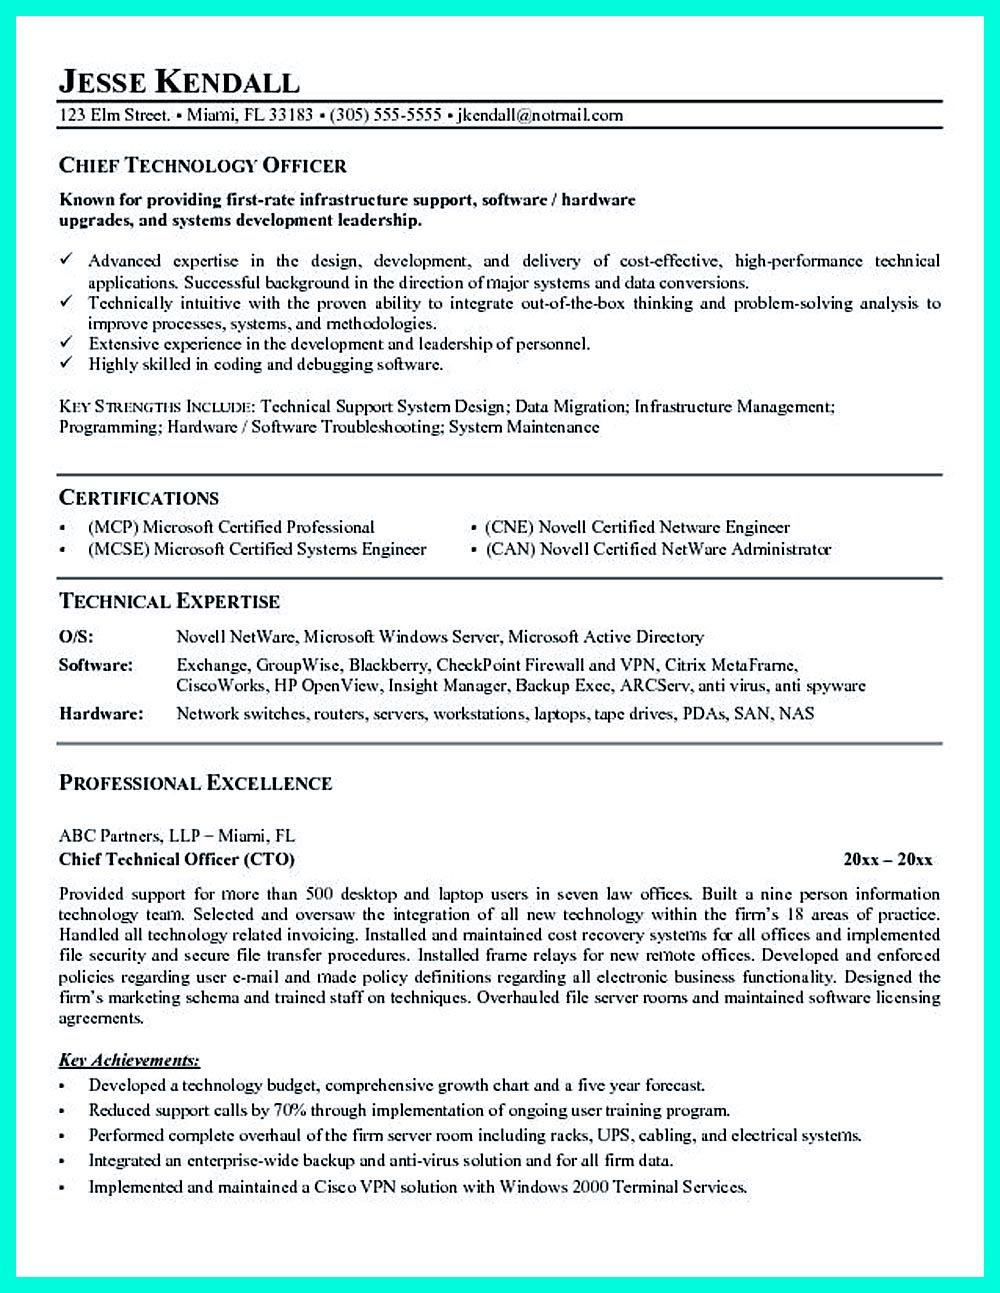 Cto Resume Or Chief Technical Officer Resume Can Be Considered As Resume For Senior Level Technology So It Must Include The Technology Expertise It Cfo Re